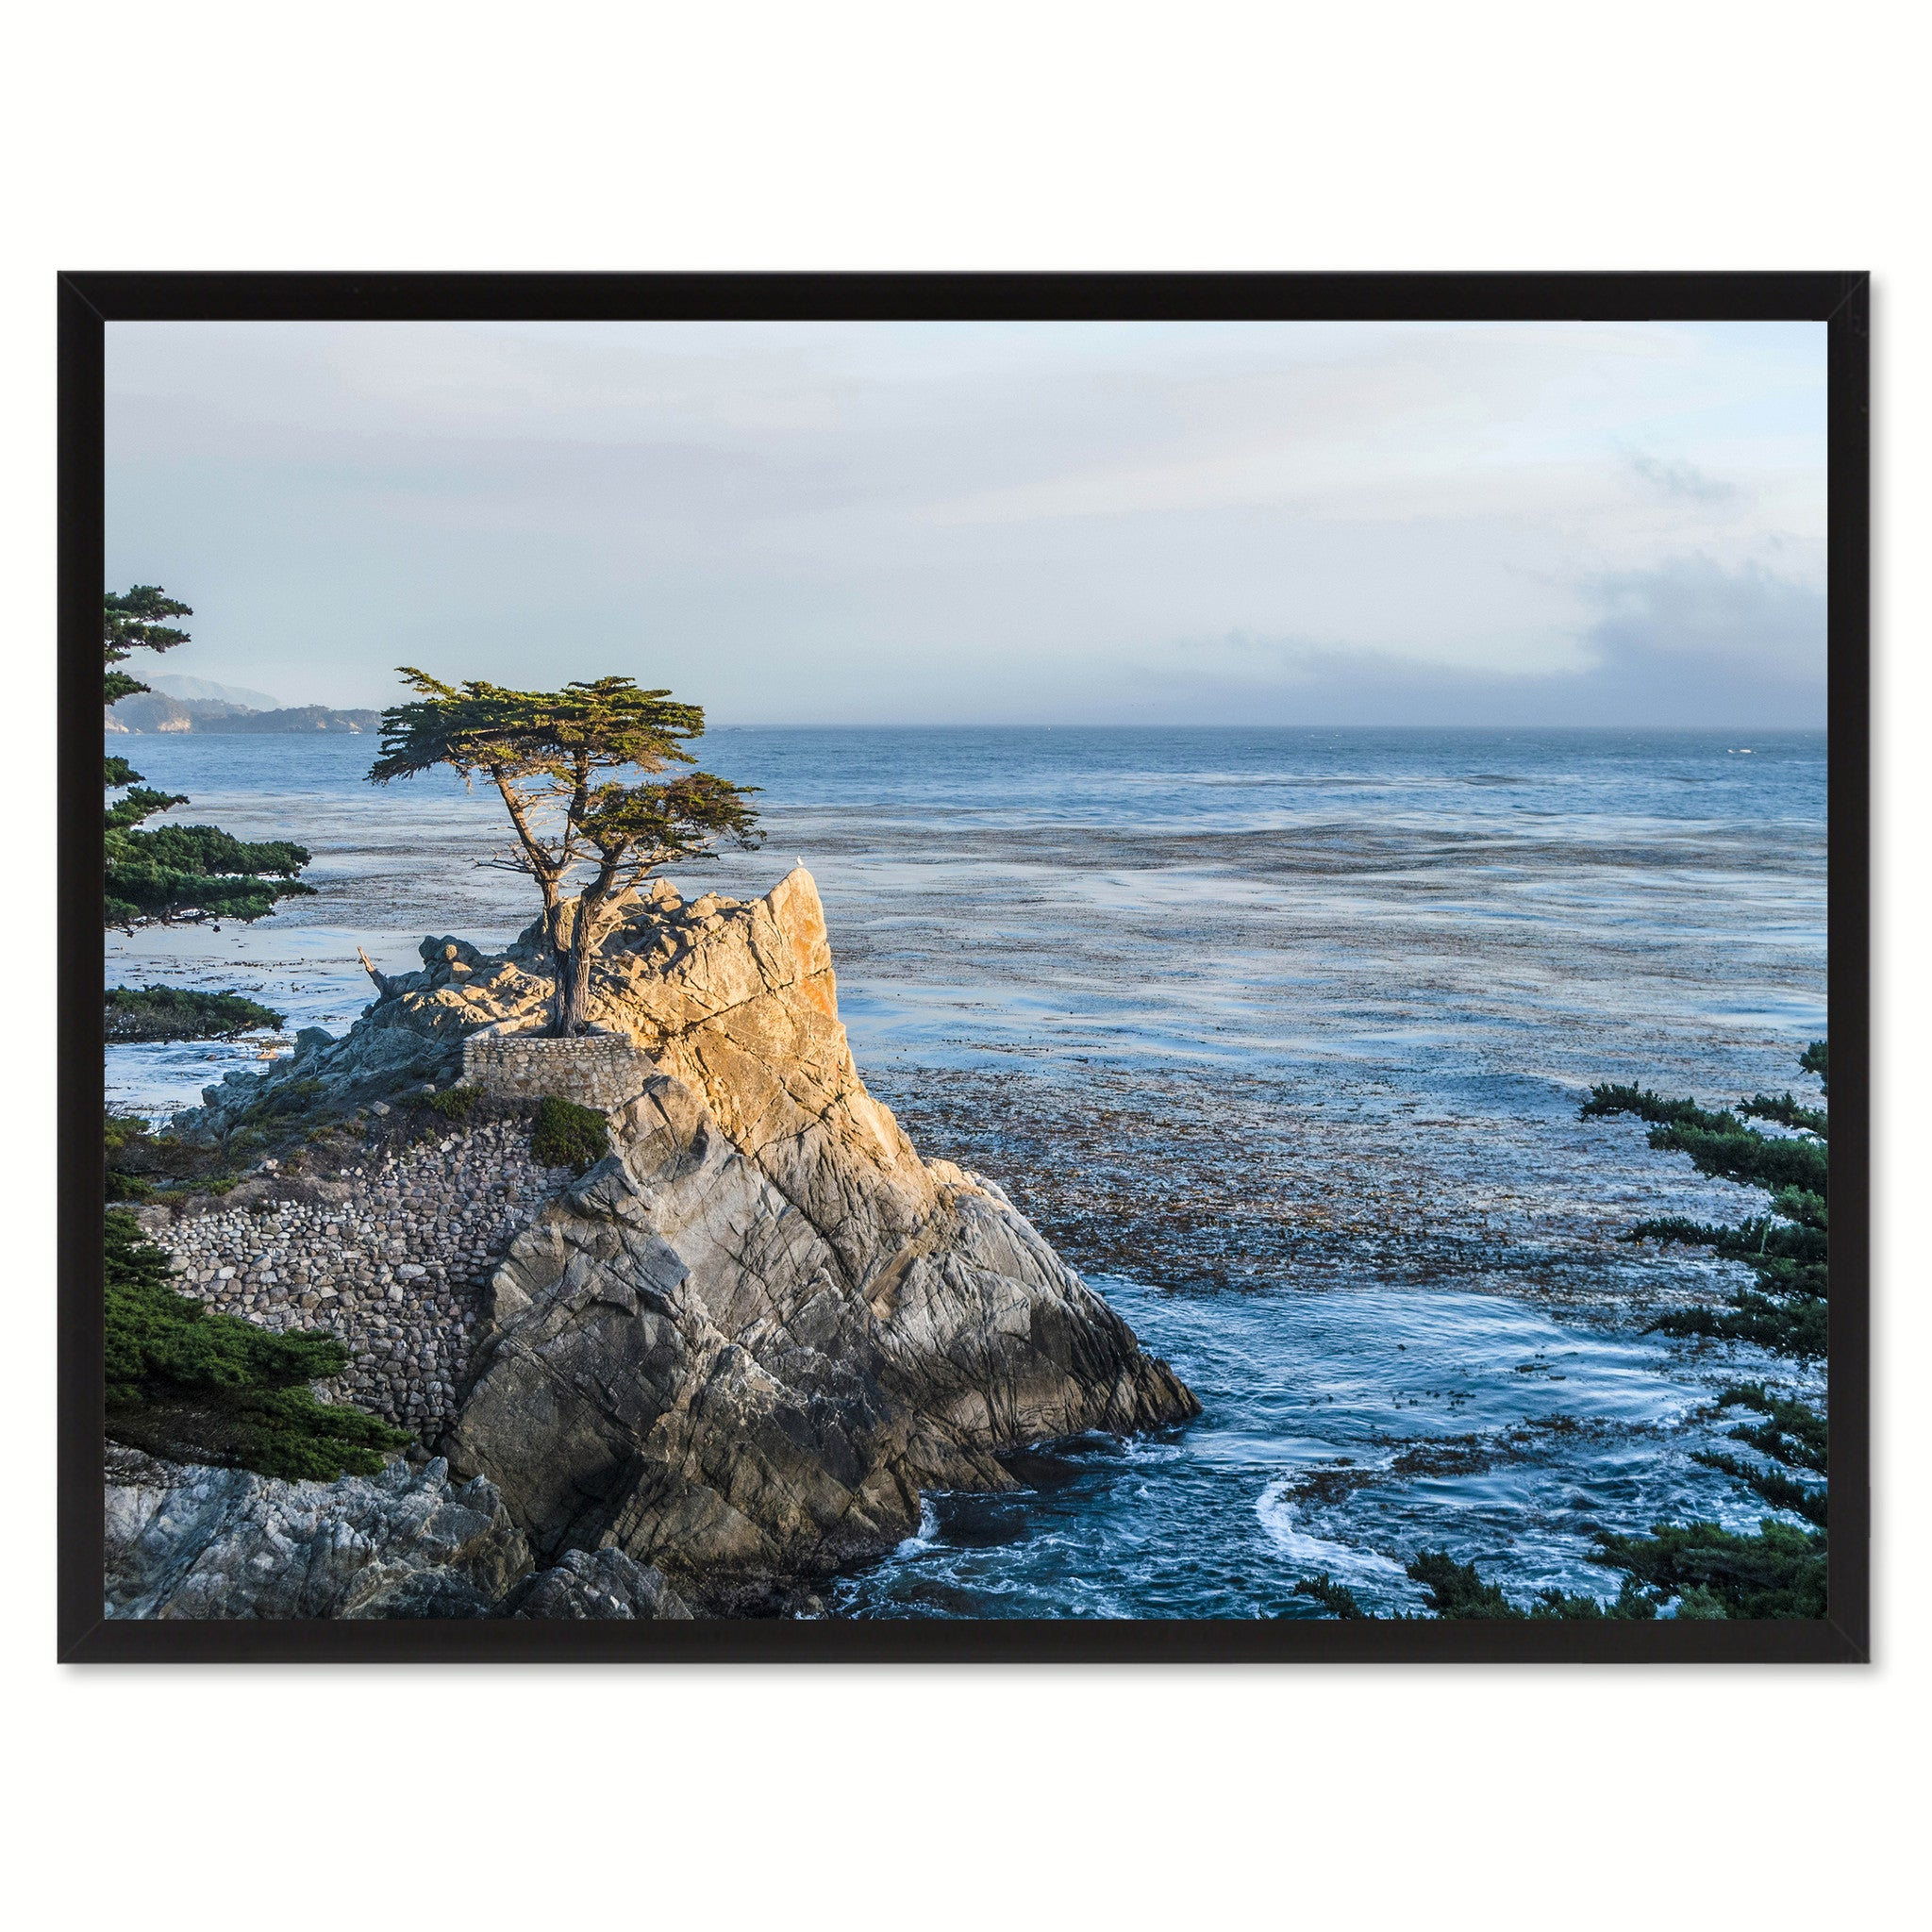 Monterey Cypress Tree Landscape Photo Canvas Print Pictures Frames Home Décor Wall Art Gifts